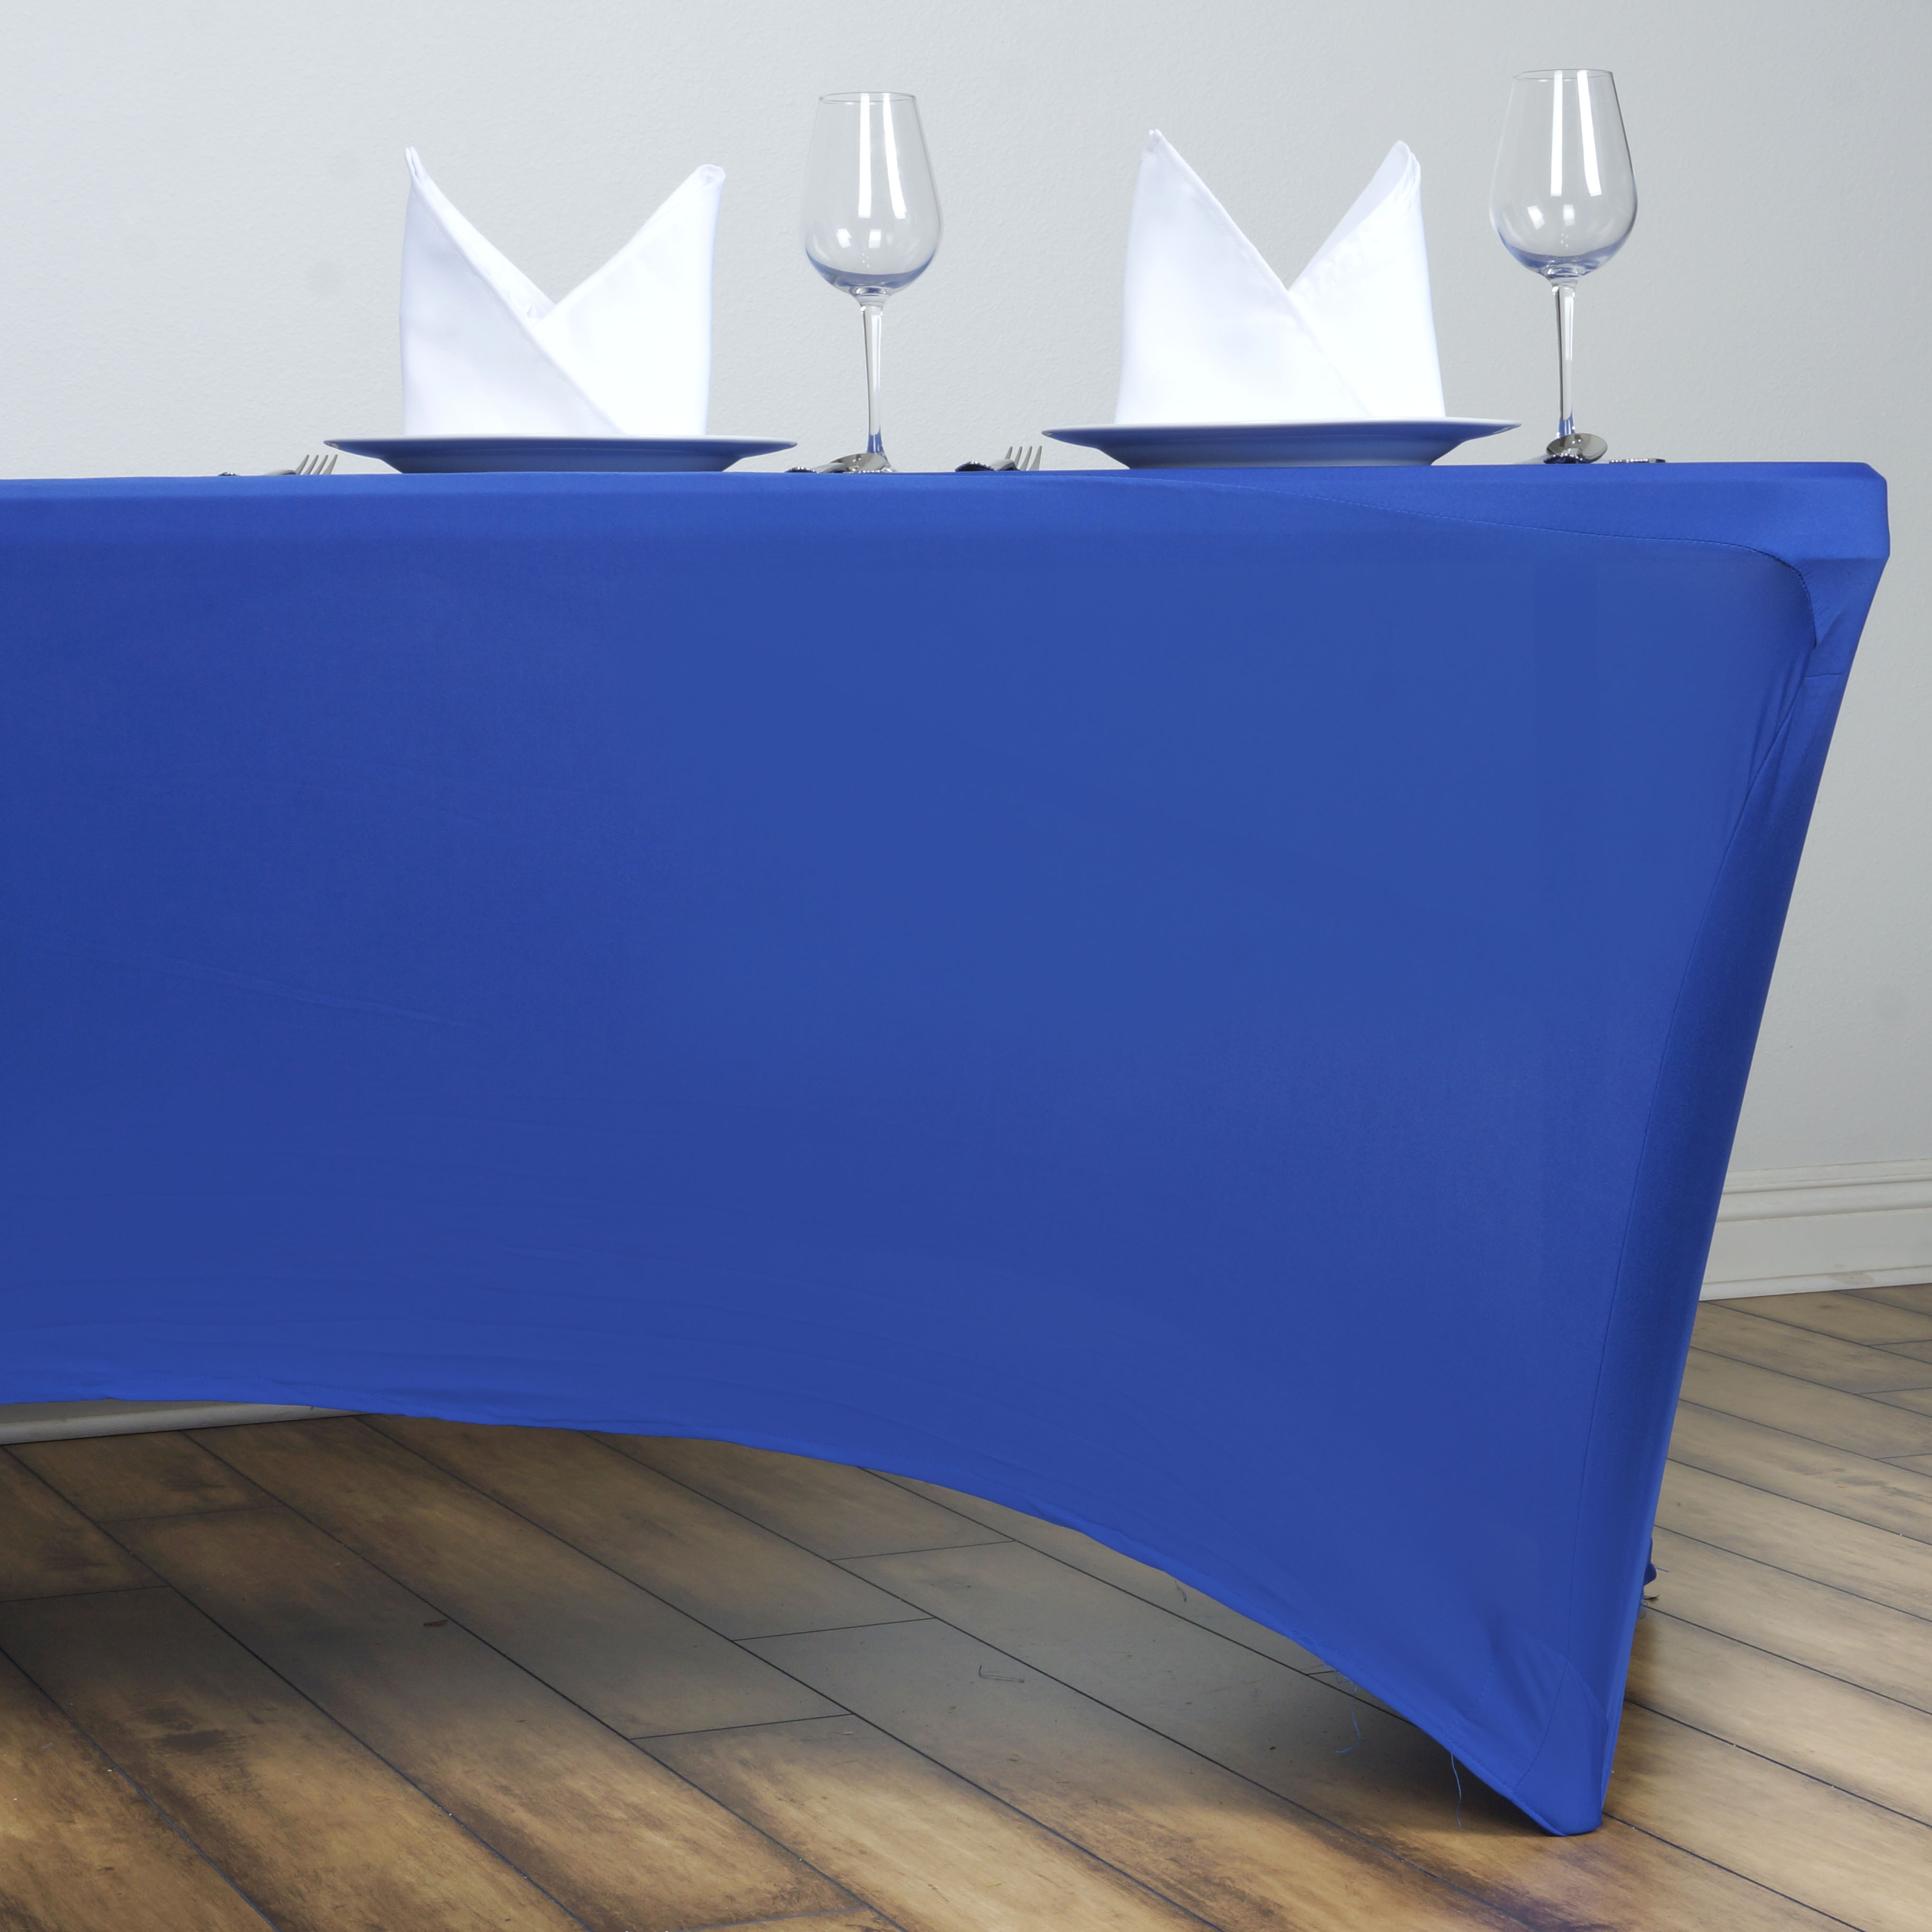 6 Pcs 6 ft Rectangle Spandex Stretch Table Covers Fitted  : tabrecspx6ftroy01 from www.ebay.com size 3653 x 3653 jpeg 778kB